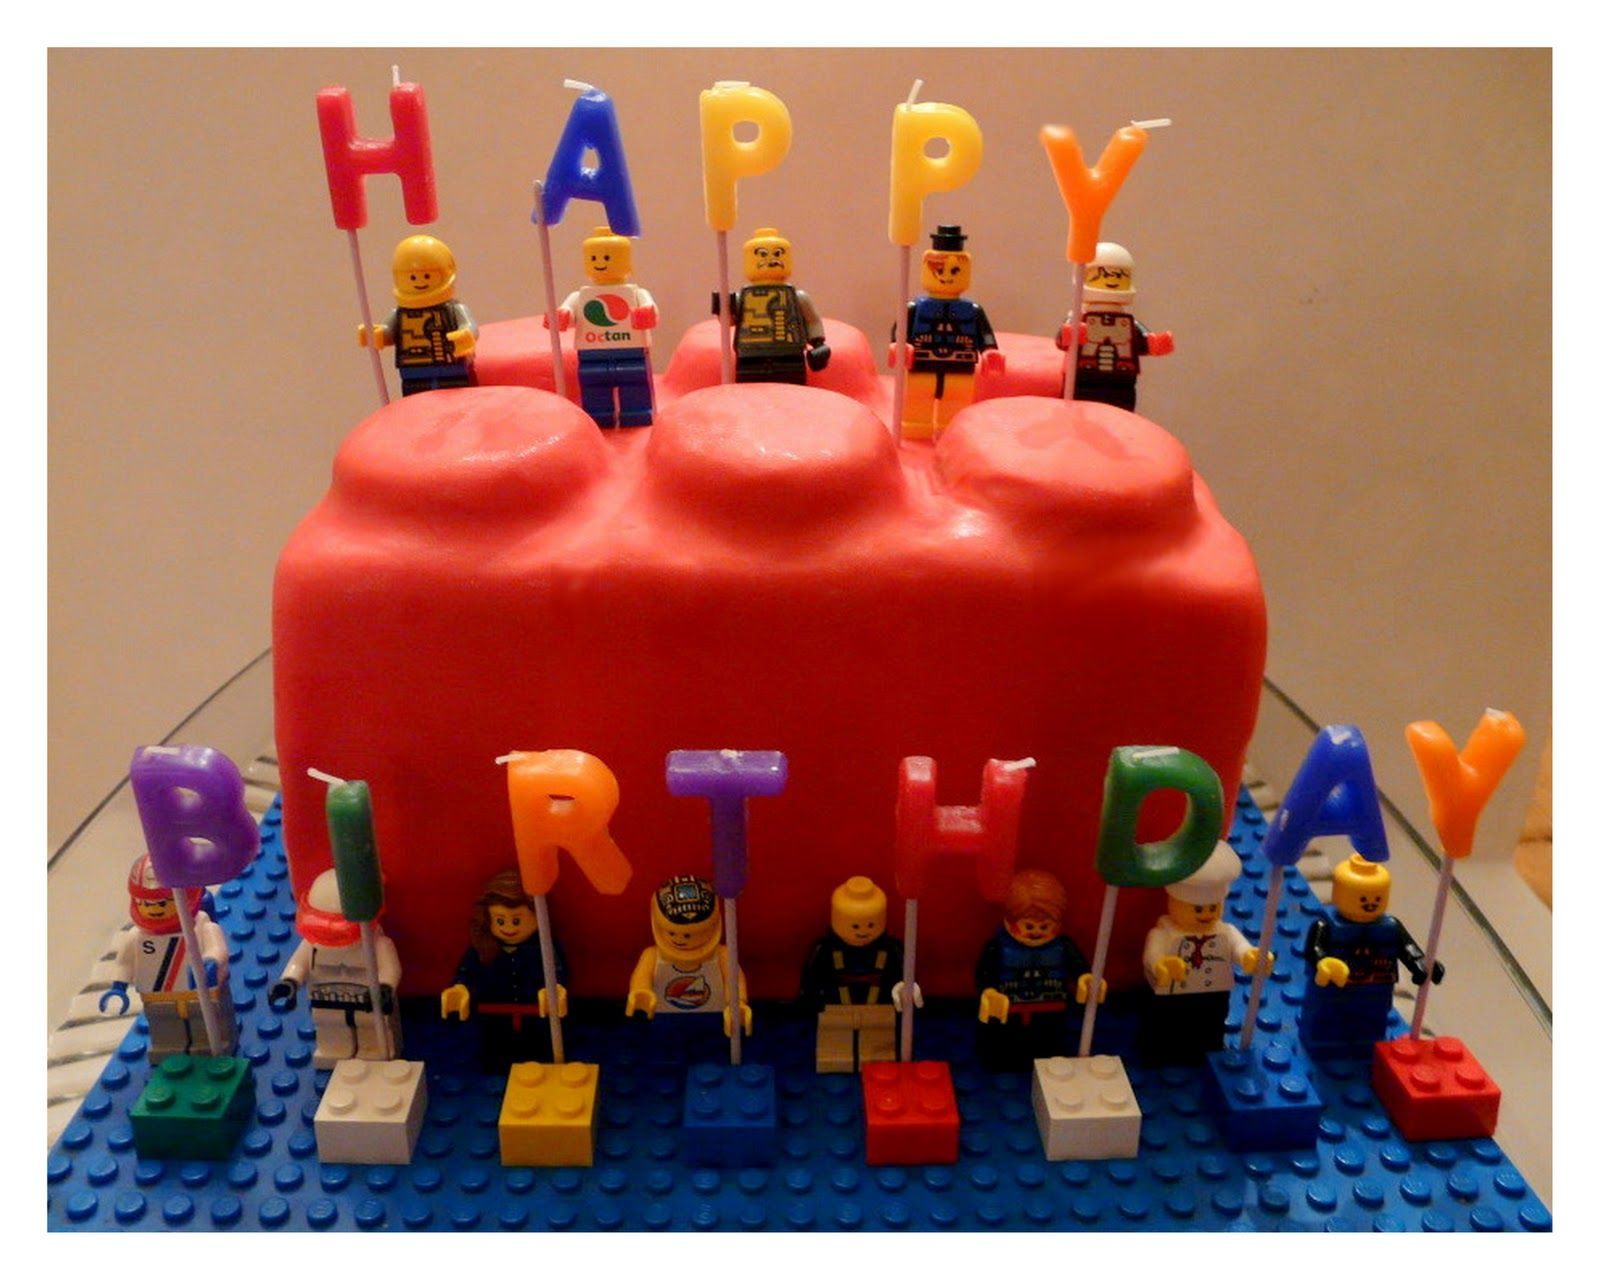 Putting Together A Birthday Party With Lego Theme